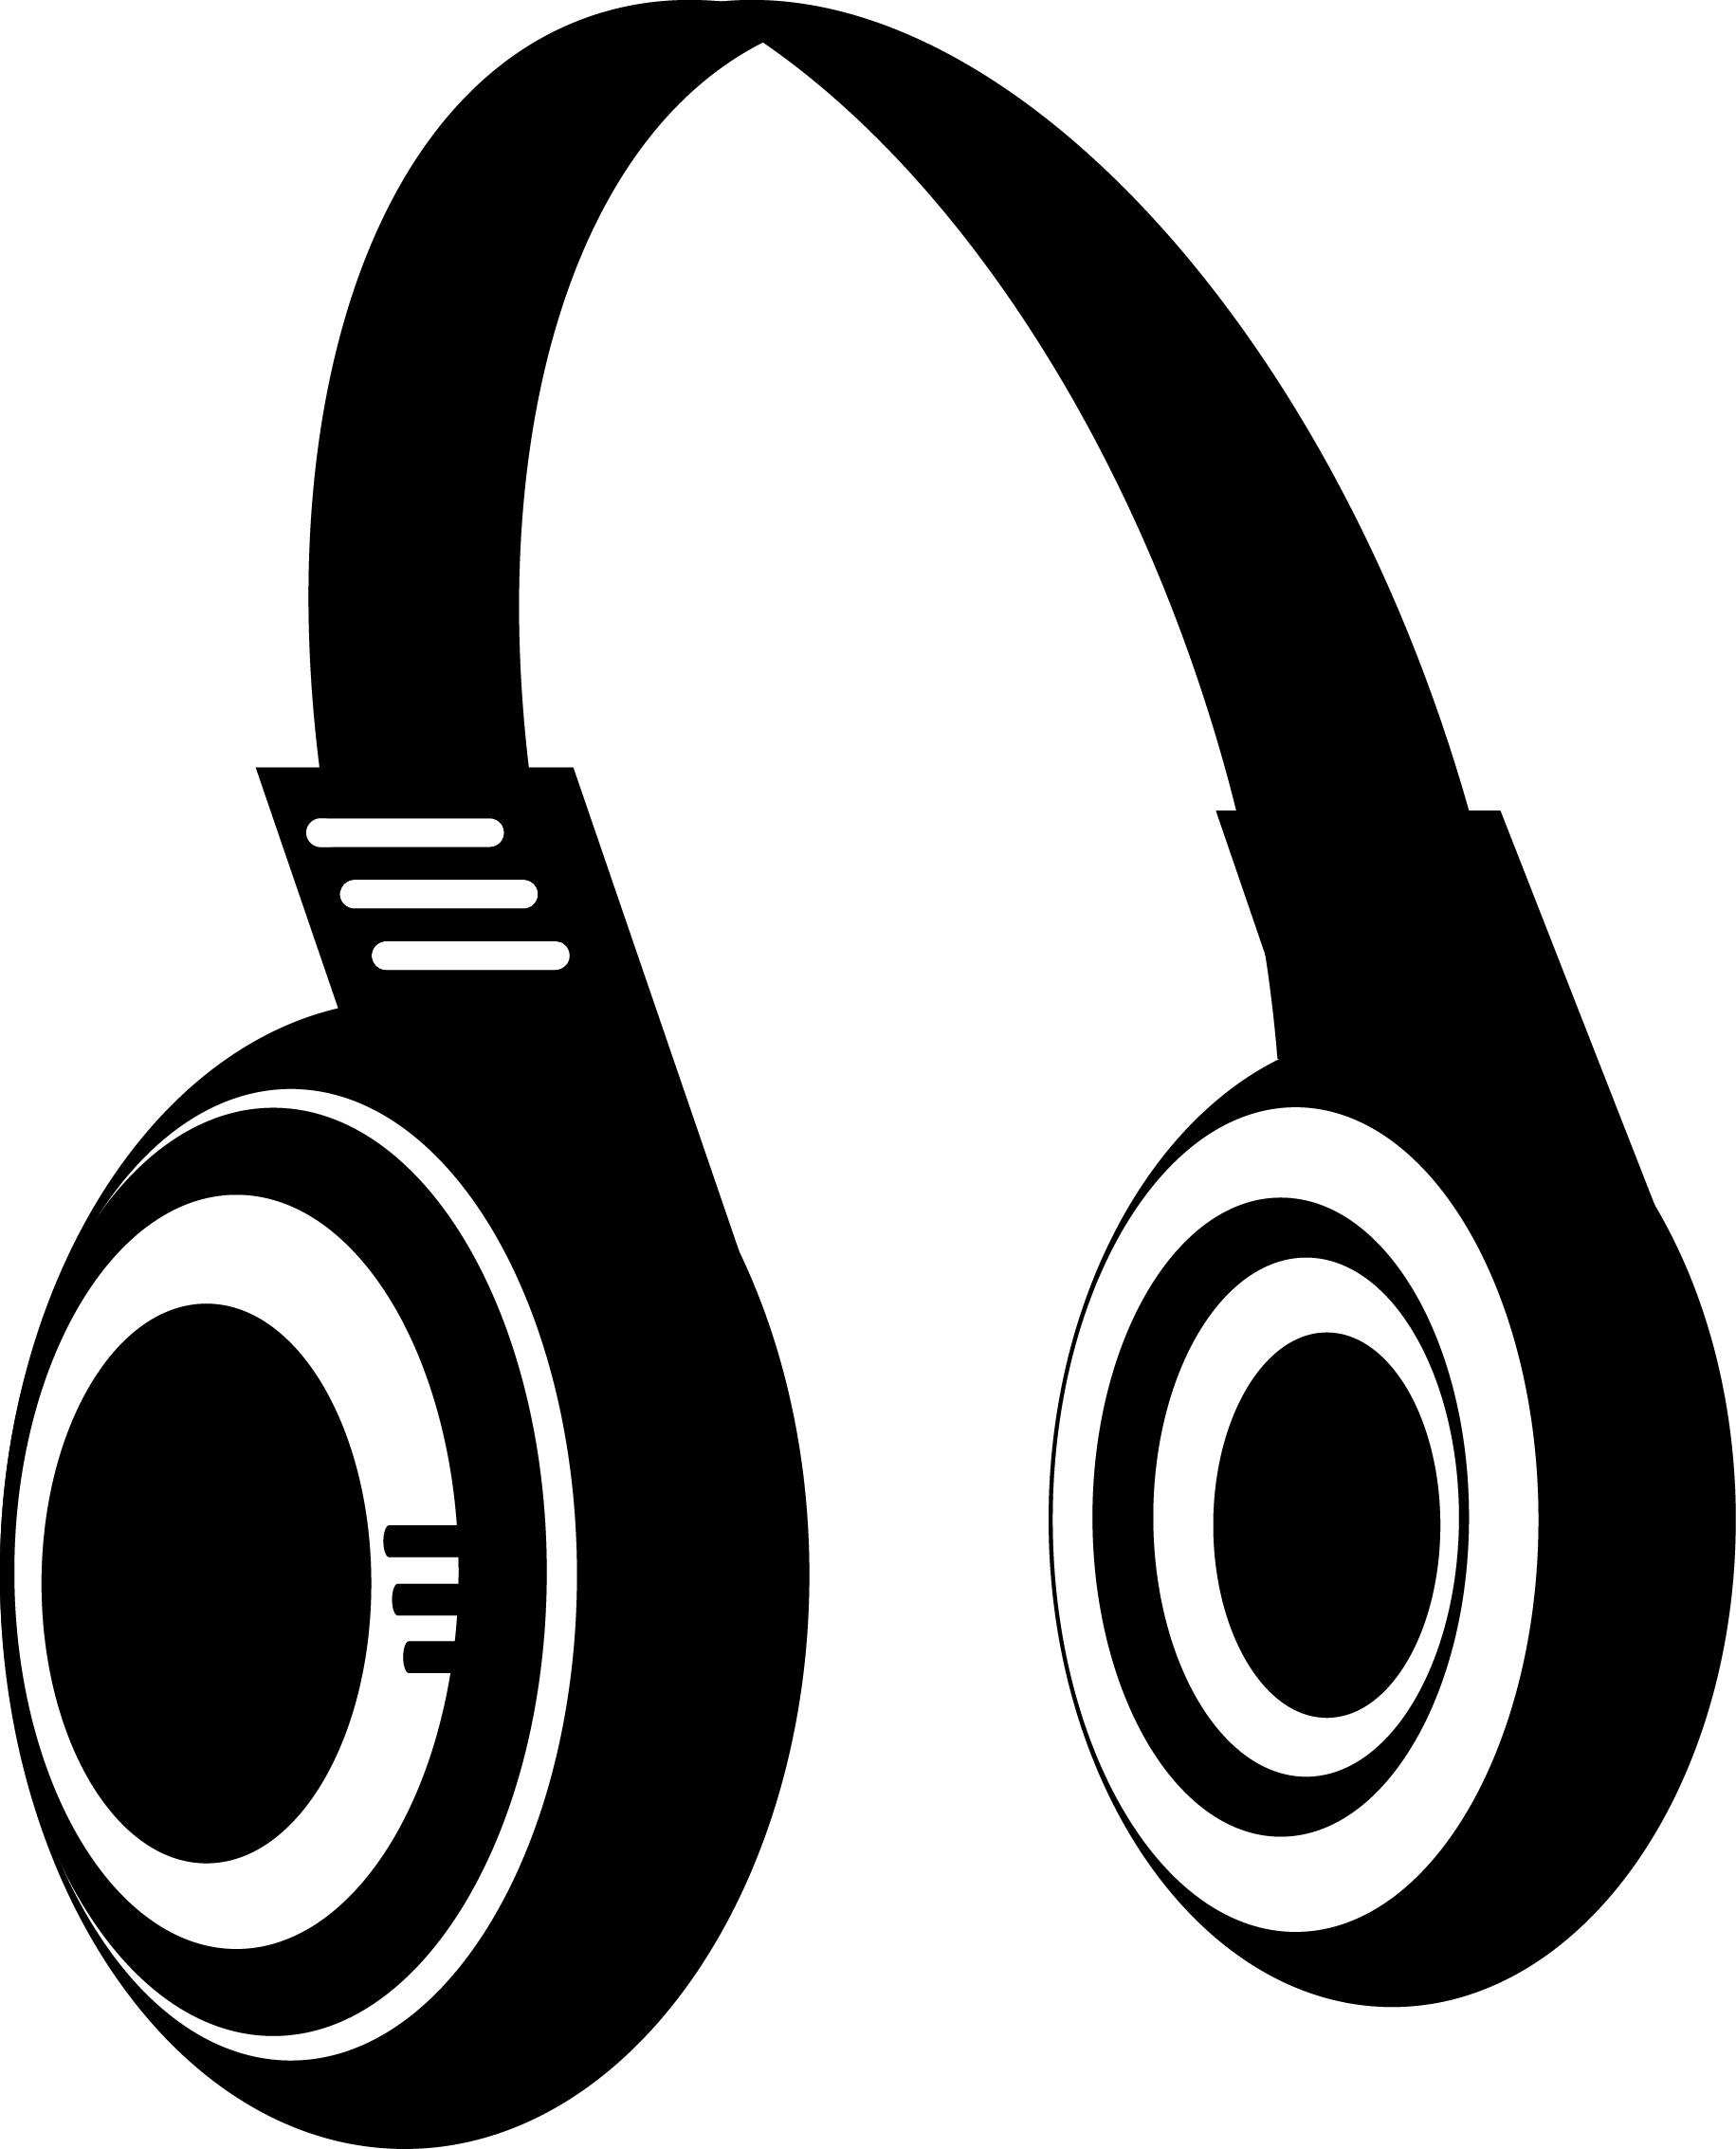 Headphones by LuisxOlavarria on DeviantArt Music Icon Images Hd